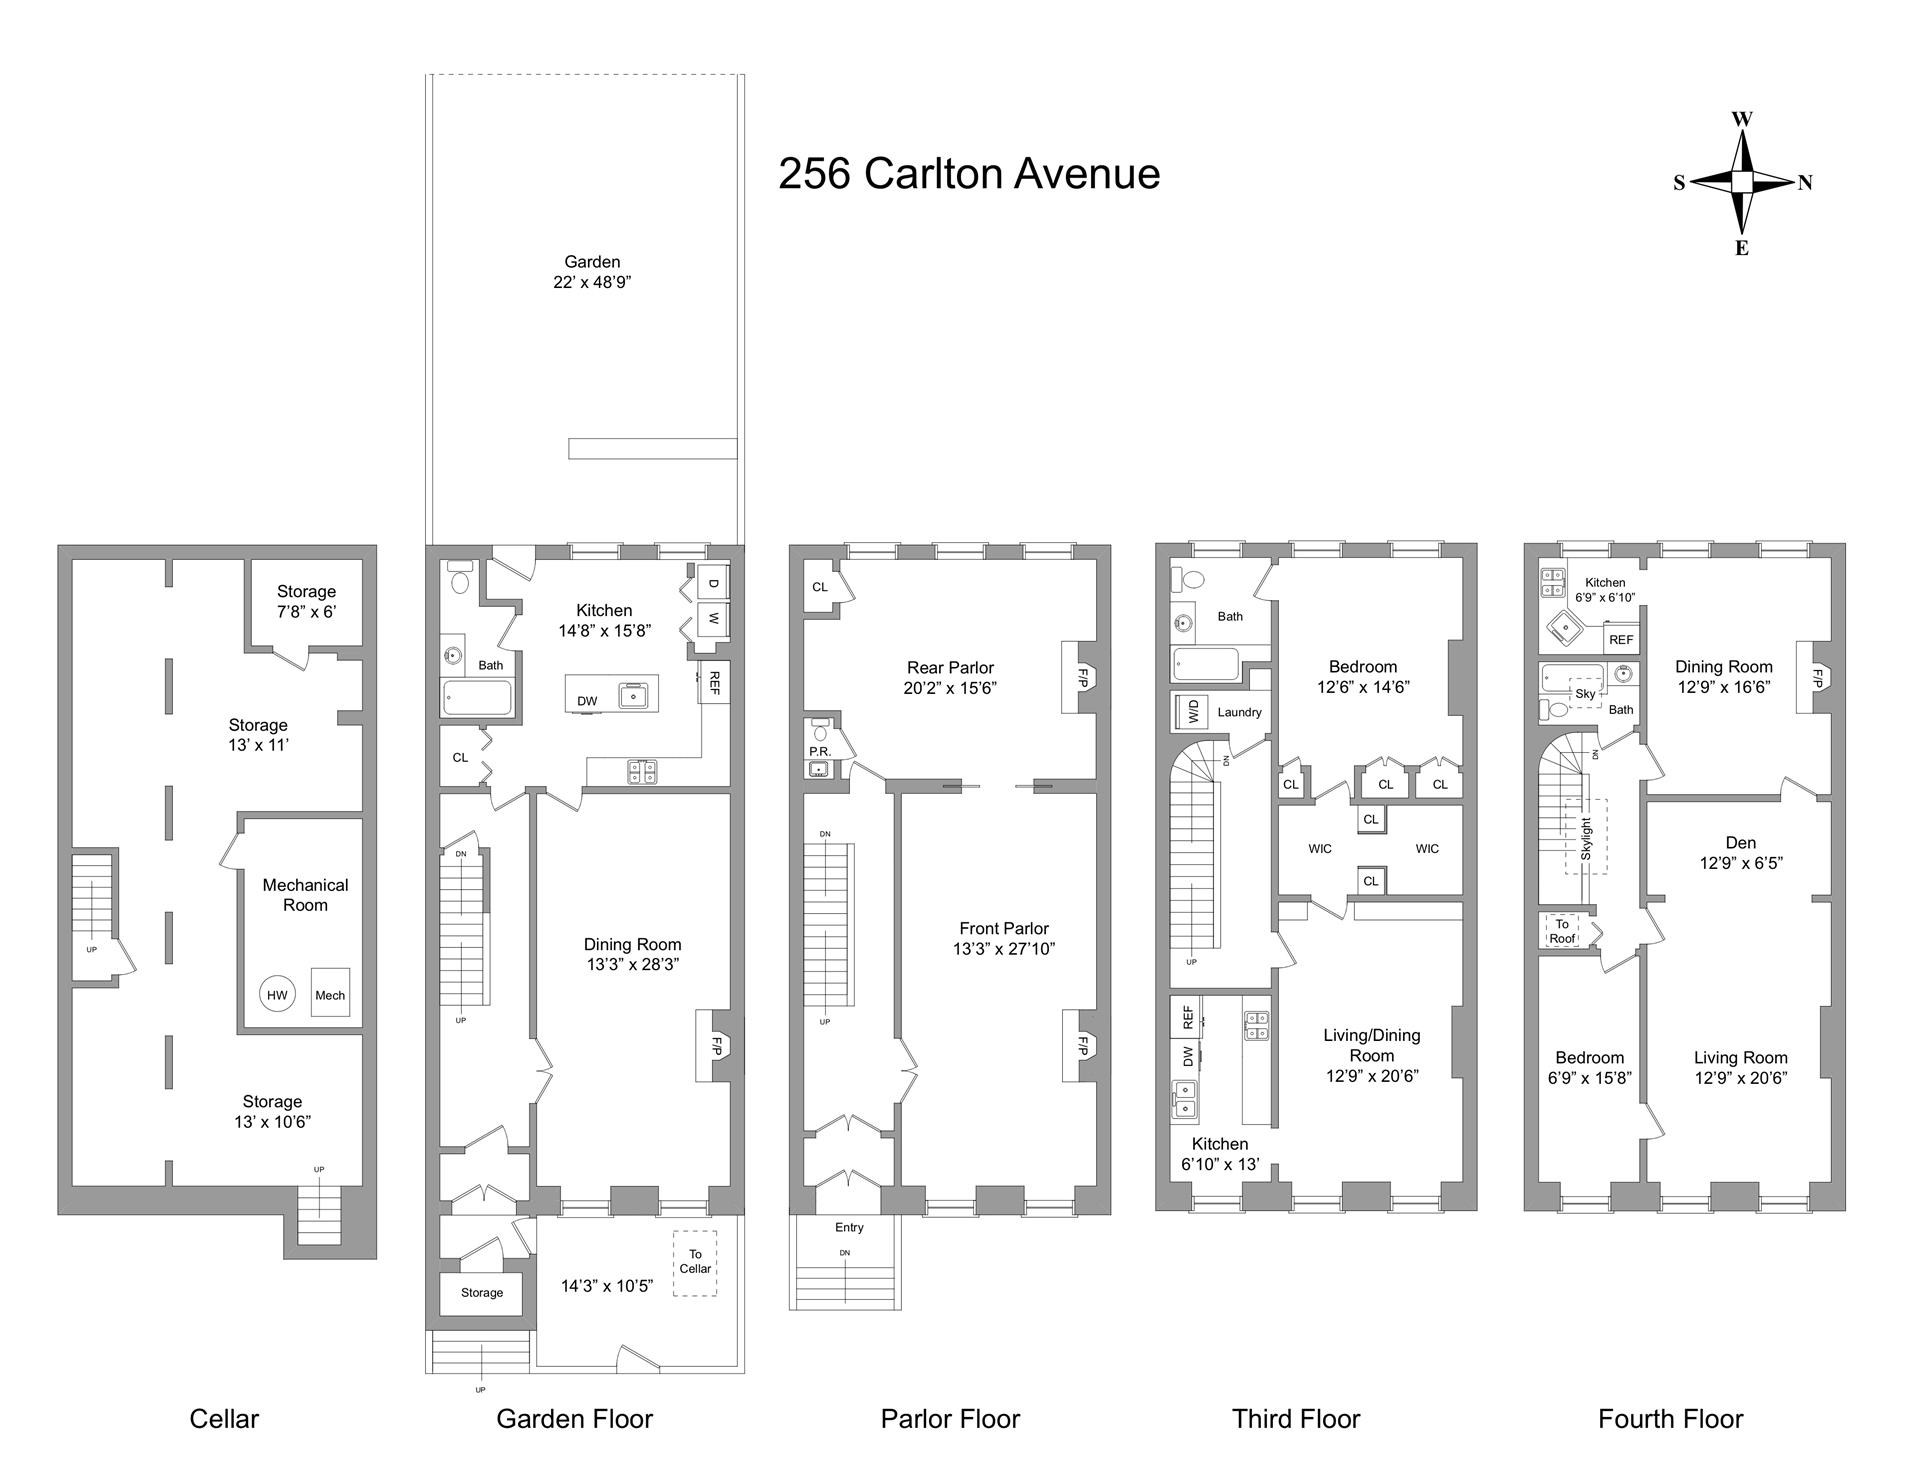 Floor plan of 256 Carlton Avenue - Fort Greene, New York